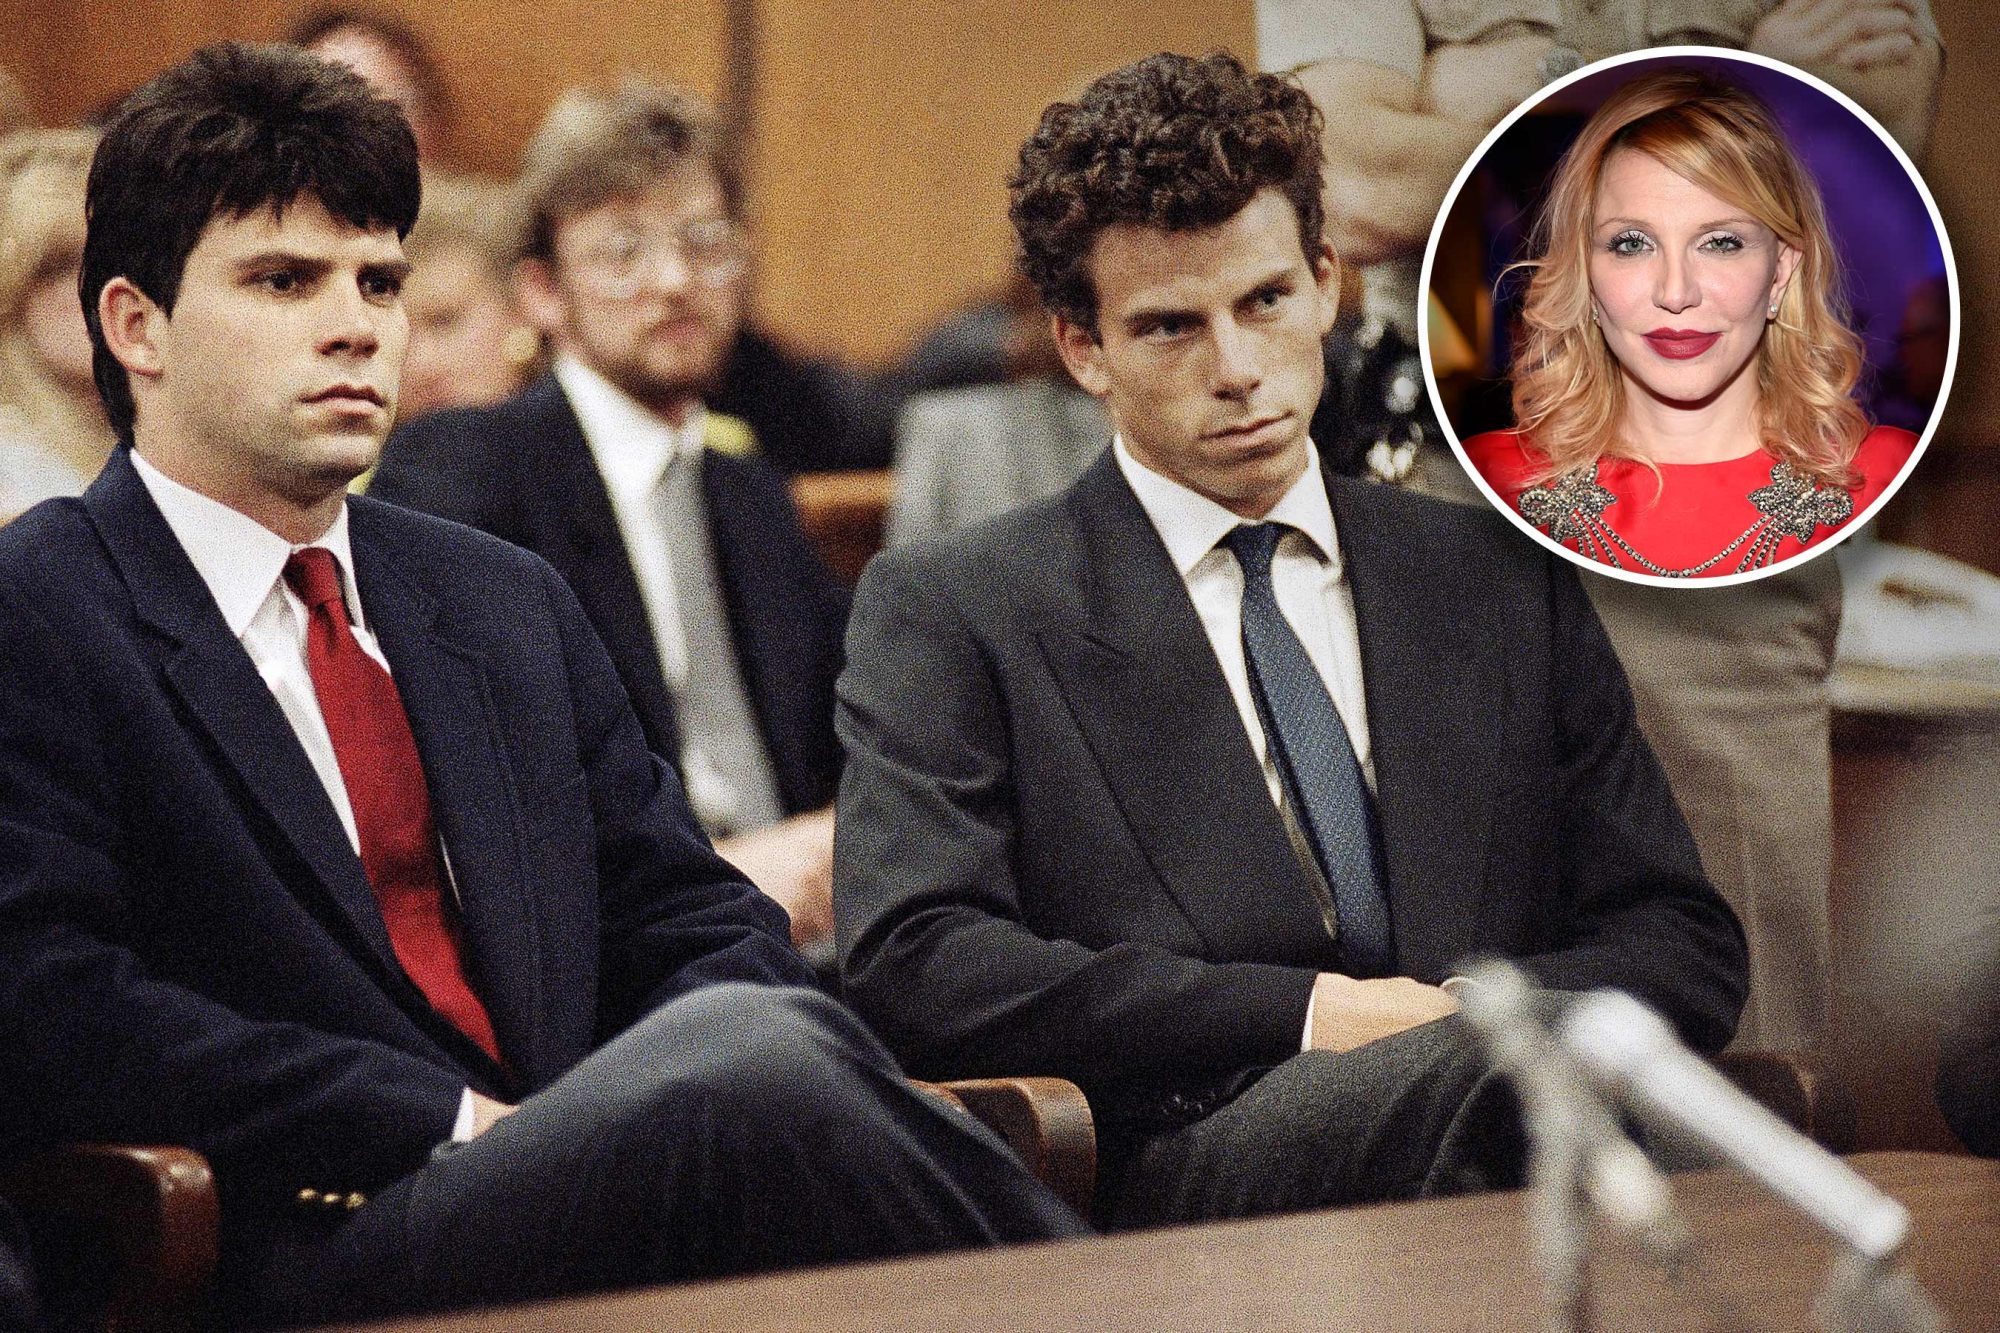 Courtney Love in Menendez Brothers Lifetime Movie